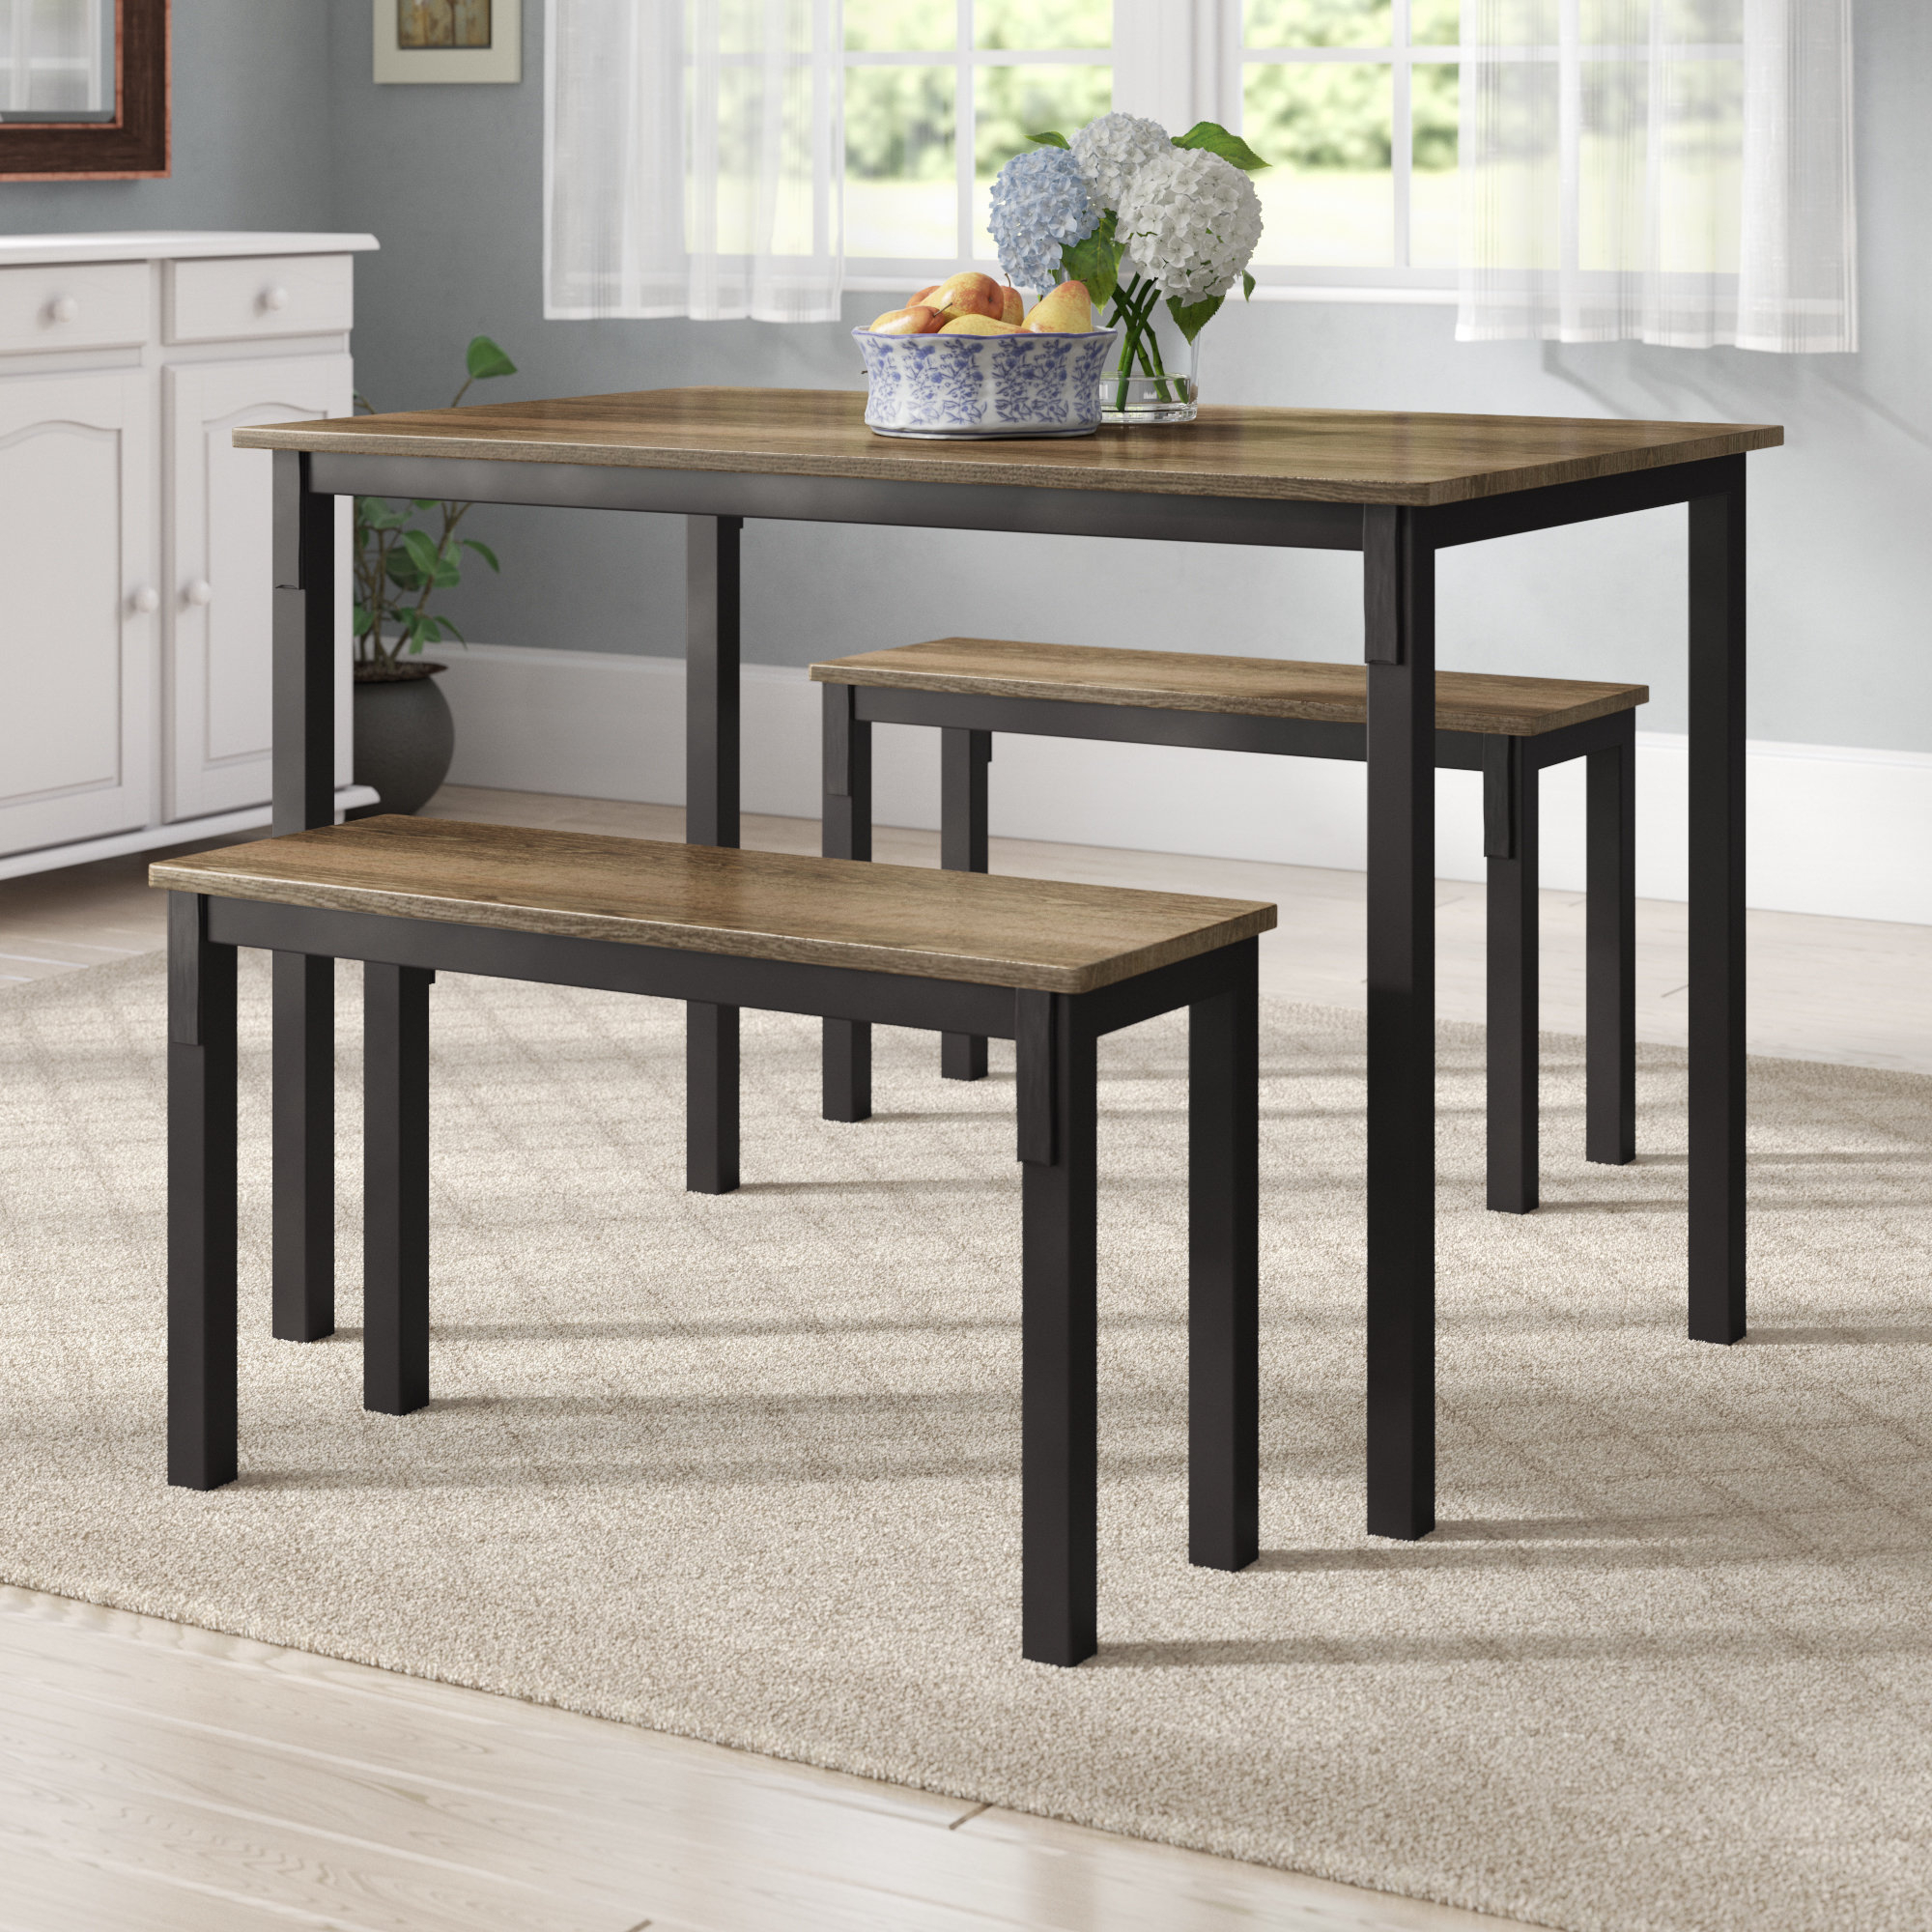 Bearden 3 Piece Dining Sets In Well Liked Rossiter 3 Piece Dining Set (View 3 of 20)